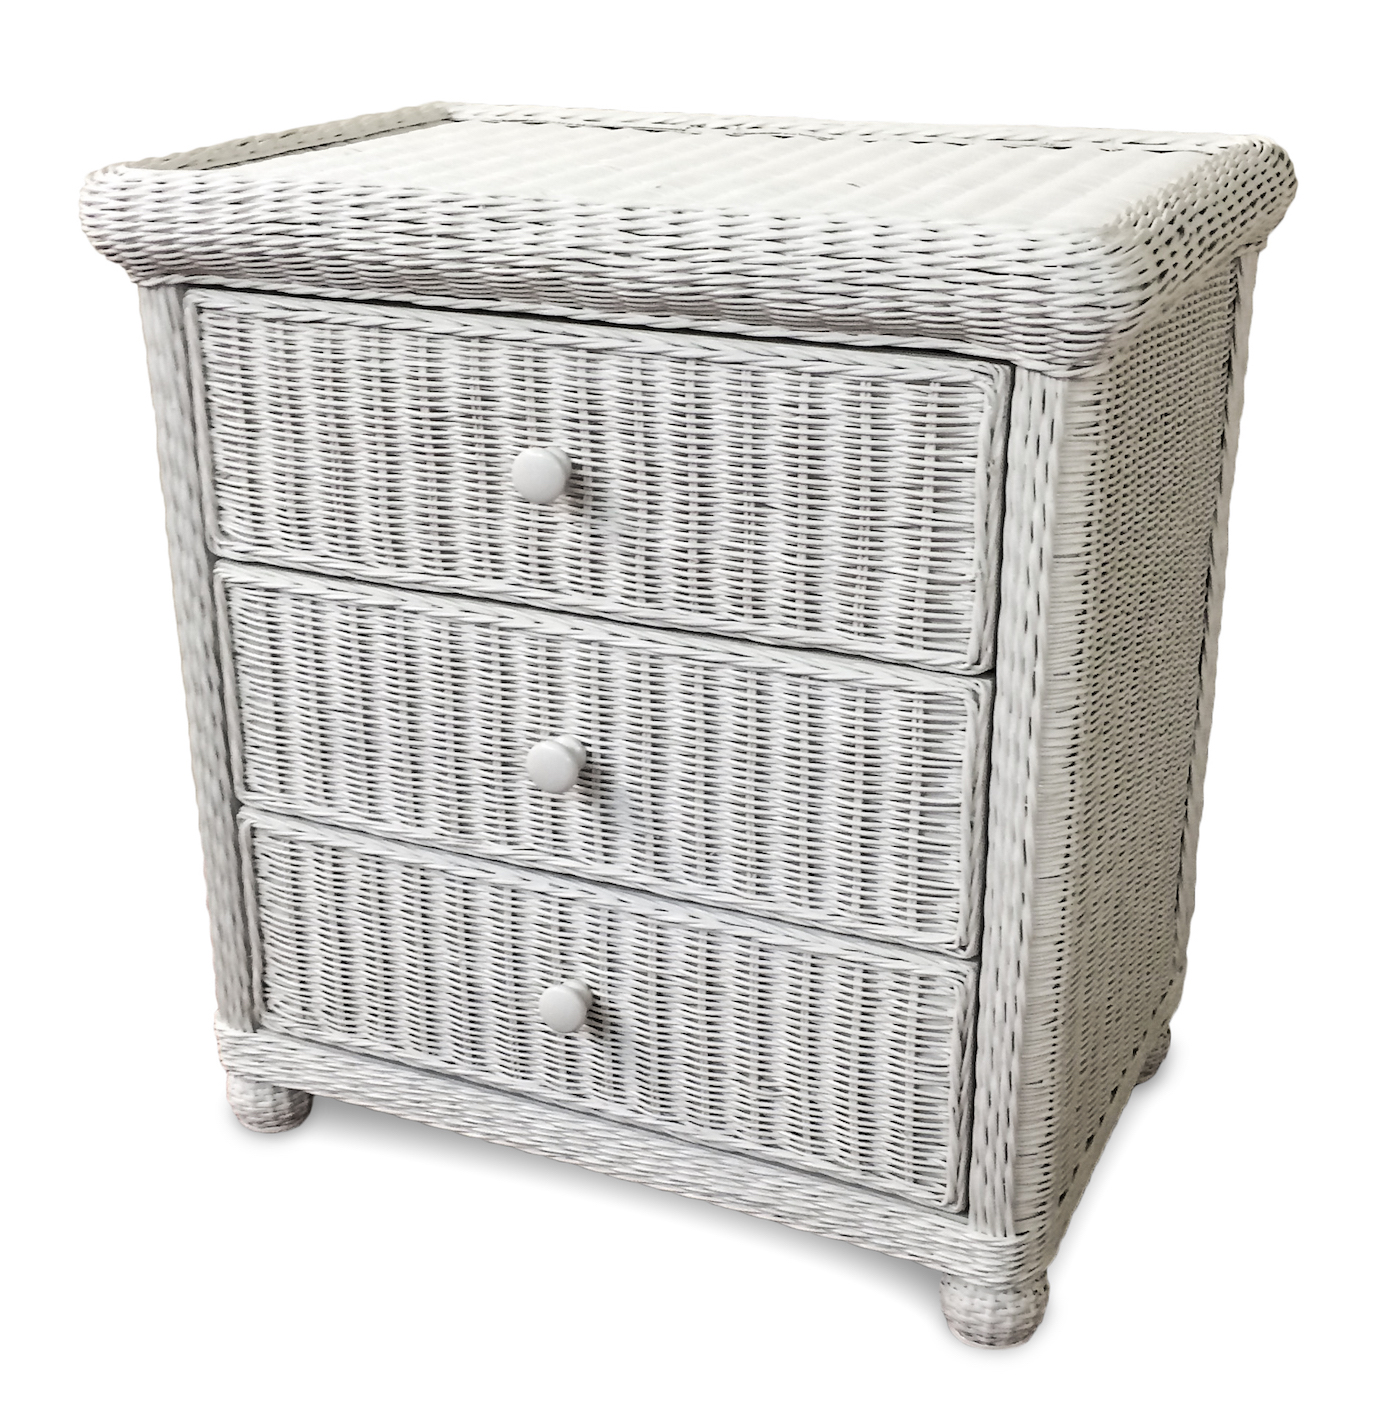 Attractive Wicker 3 Drawer Dresser - Elana | Wicker Paradise KU38